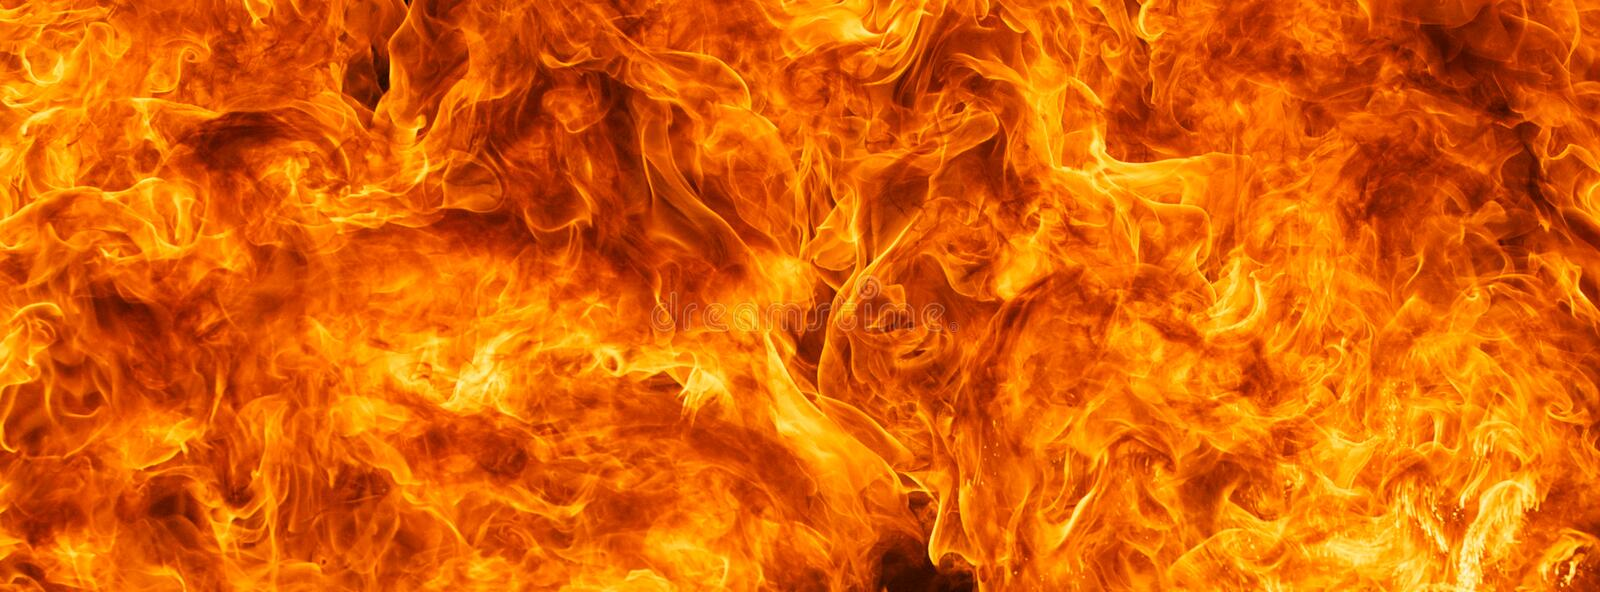 Blaze fire flame texture background stock photography